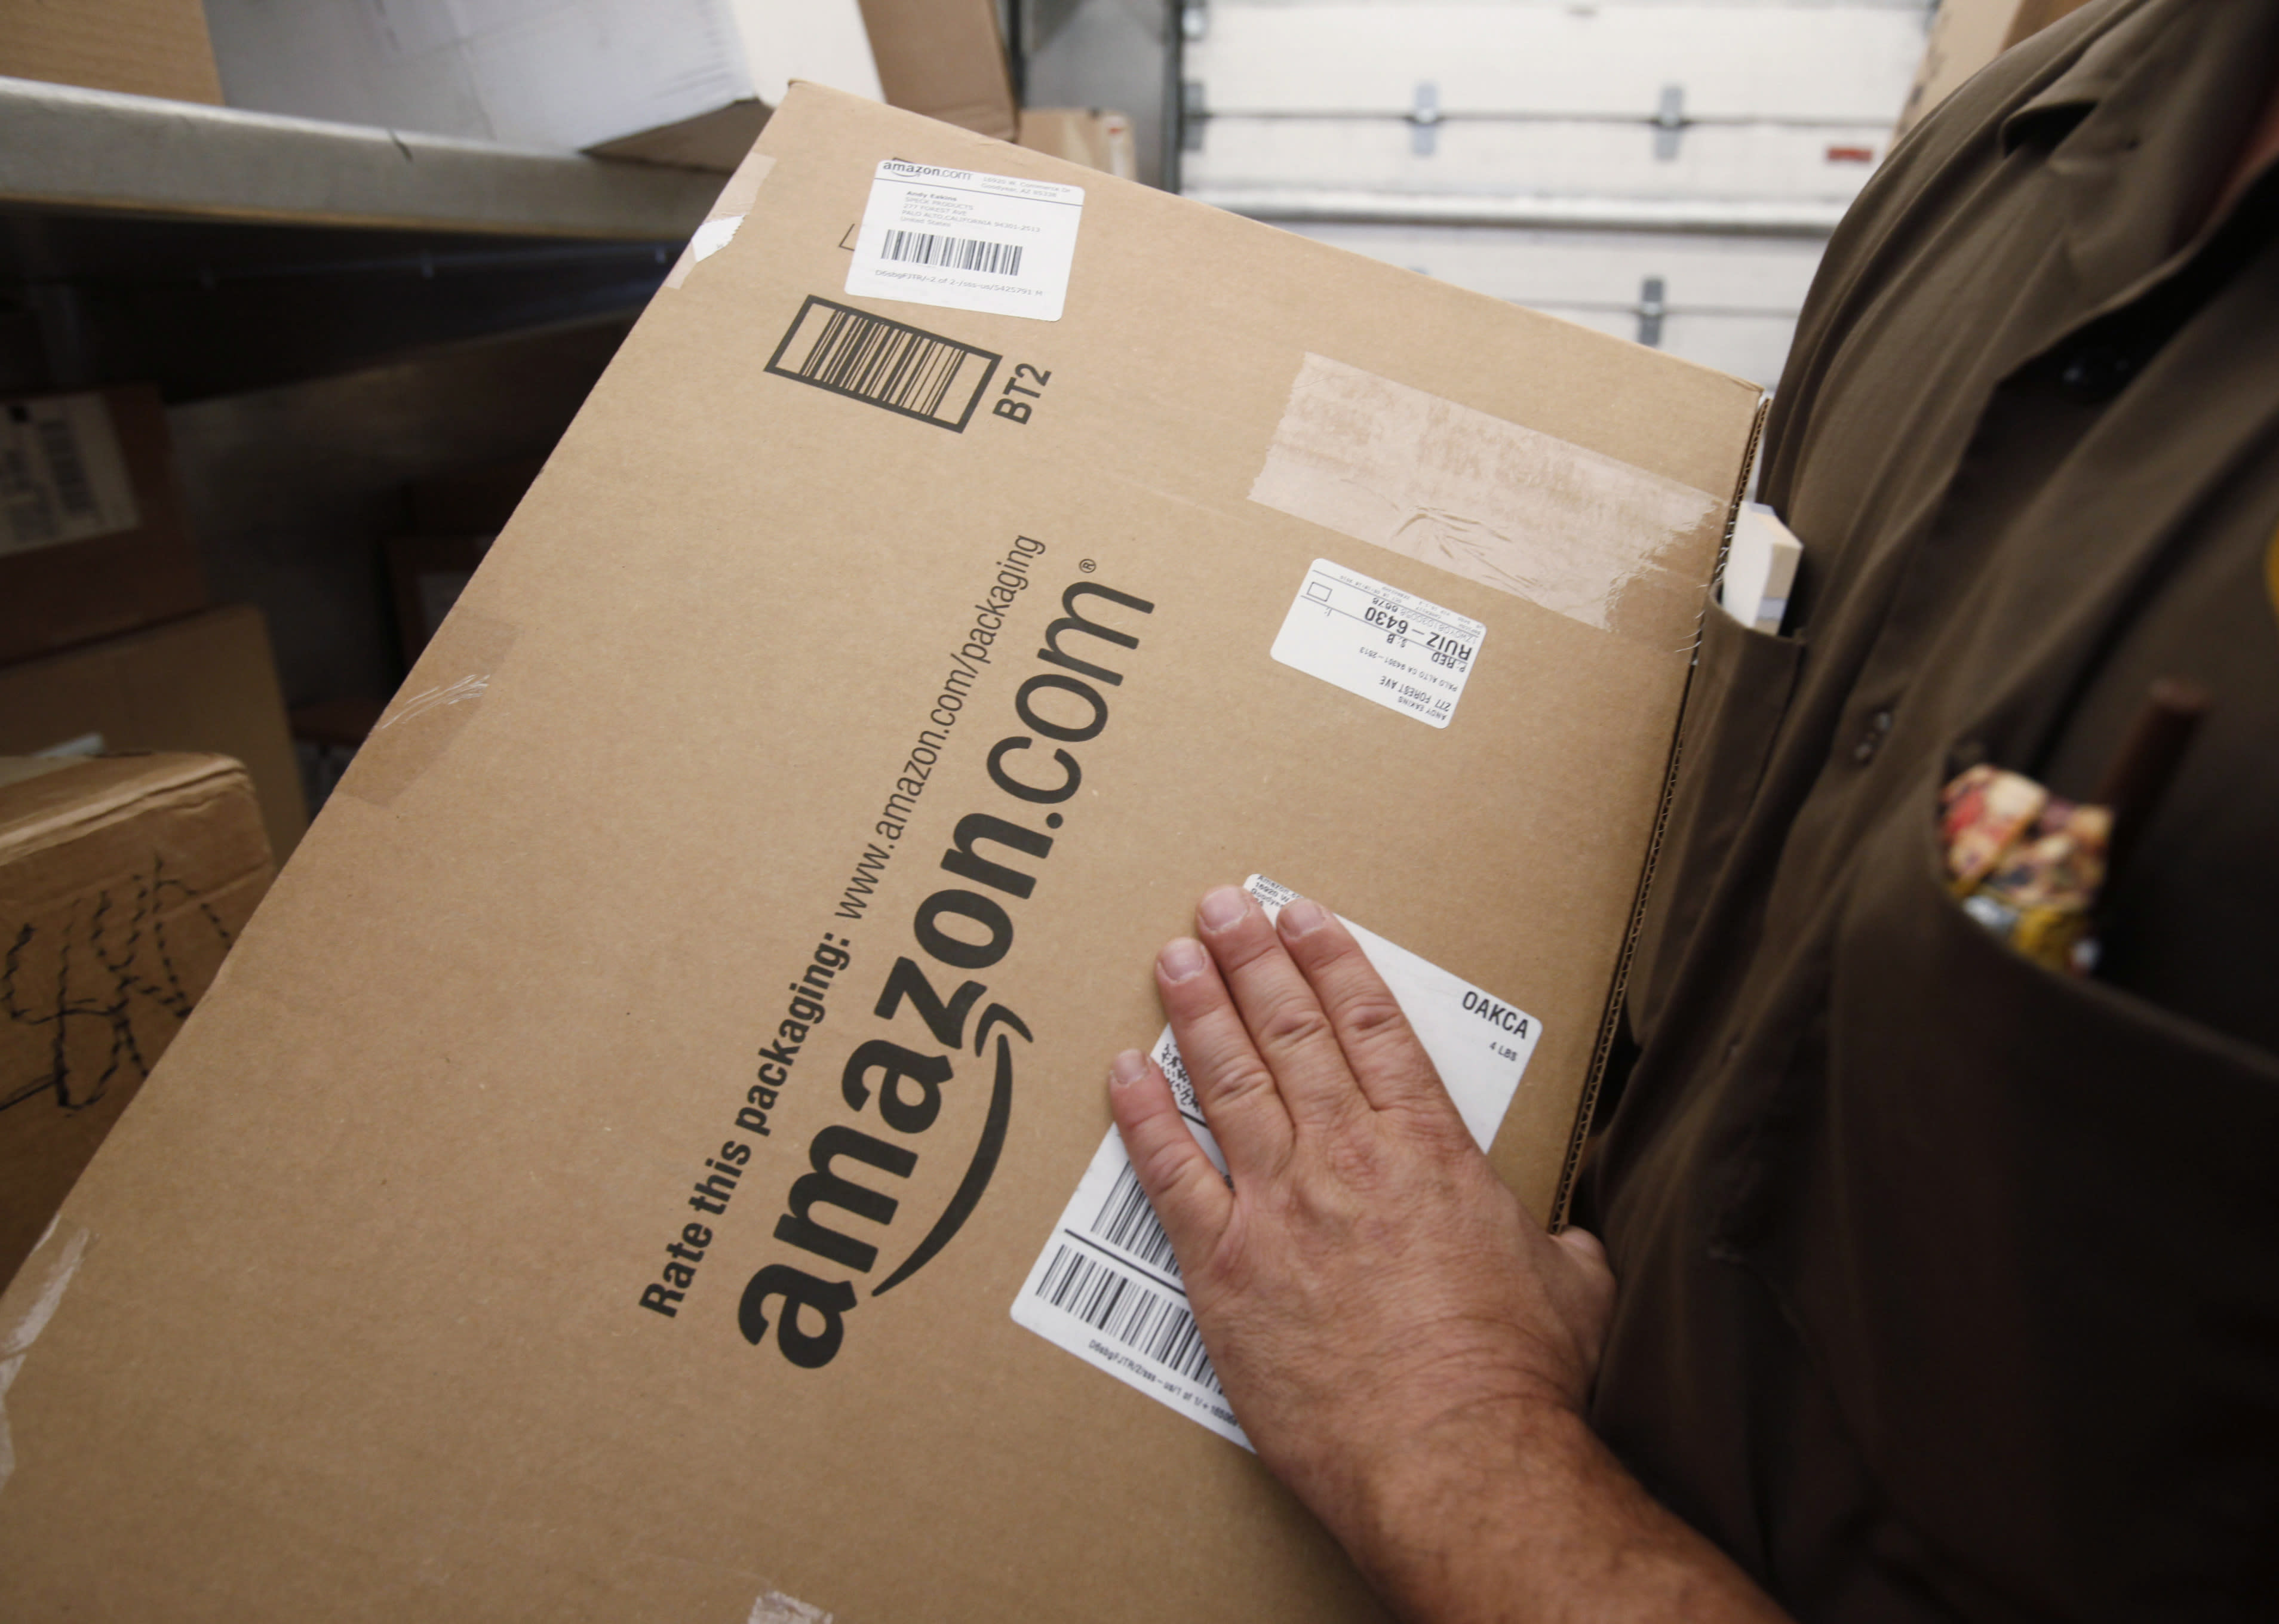 Amazon delivers on cloud computing profits, Infosys drops on outlook